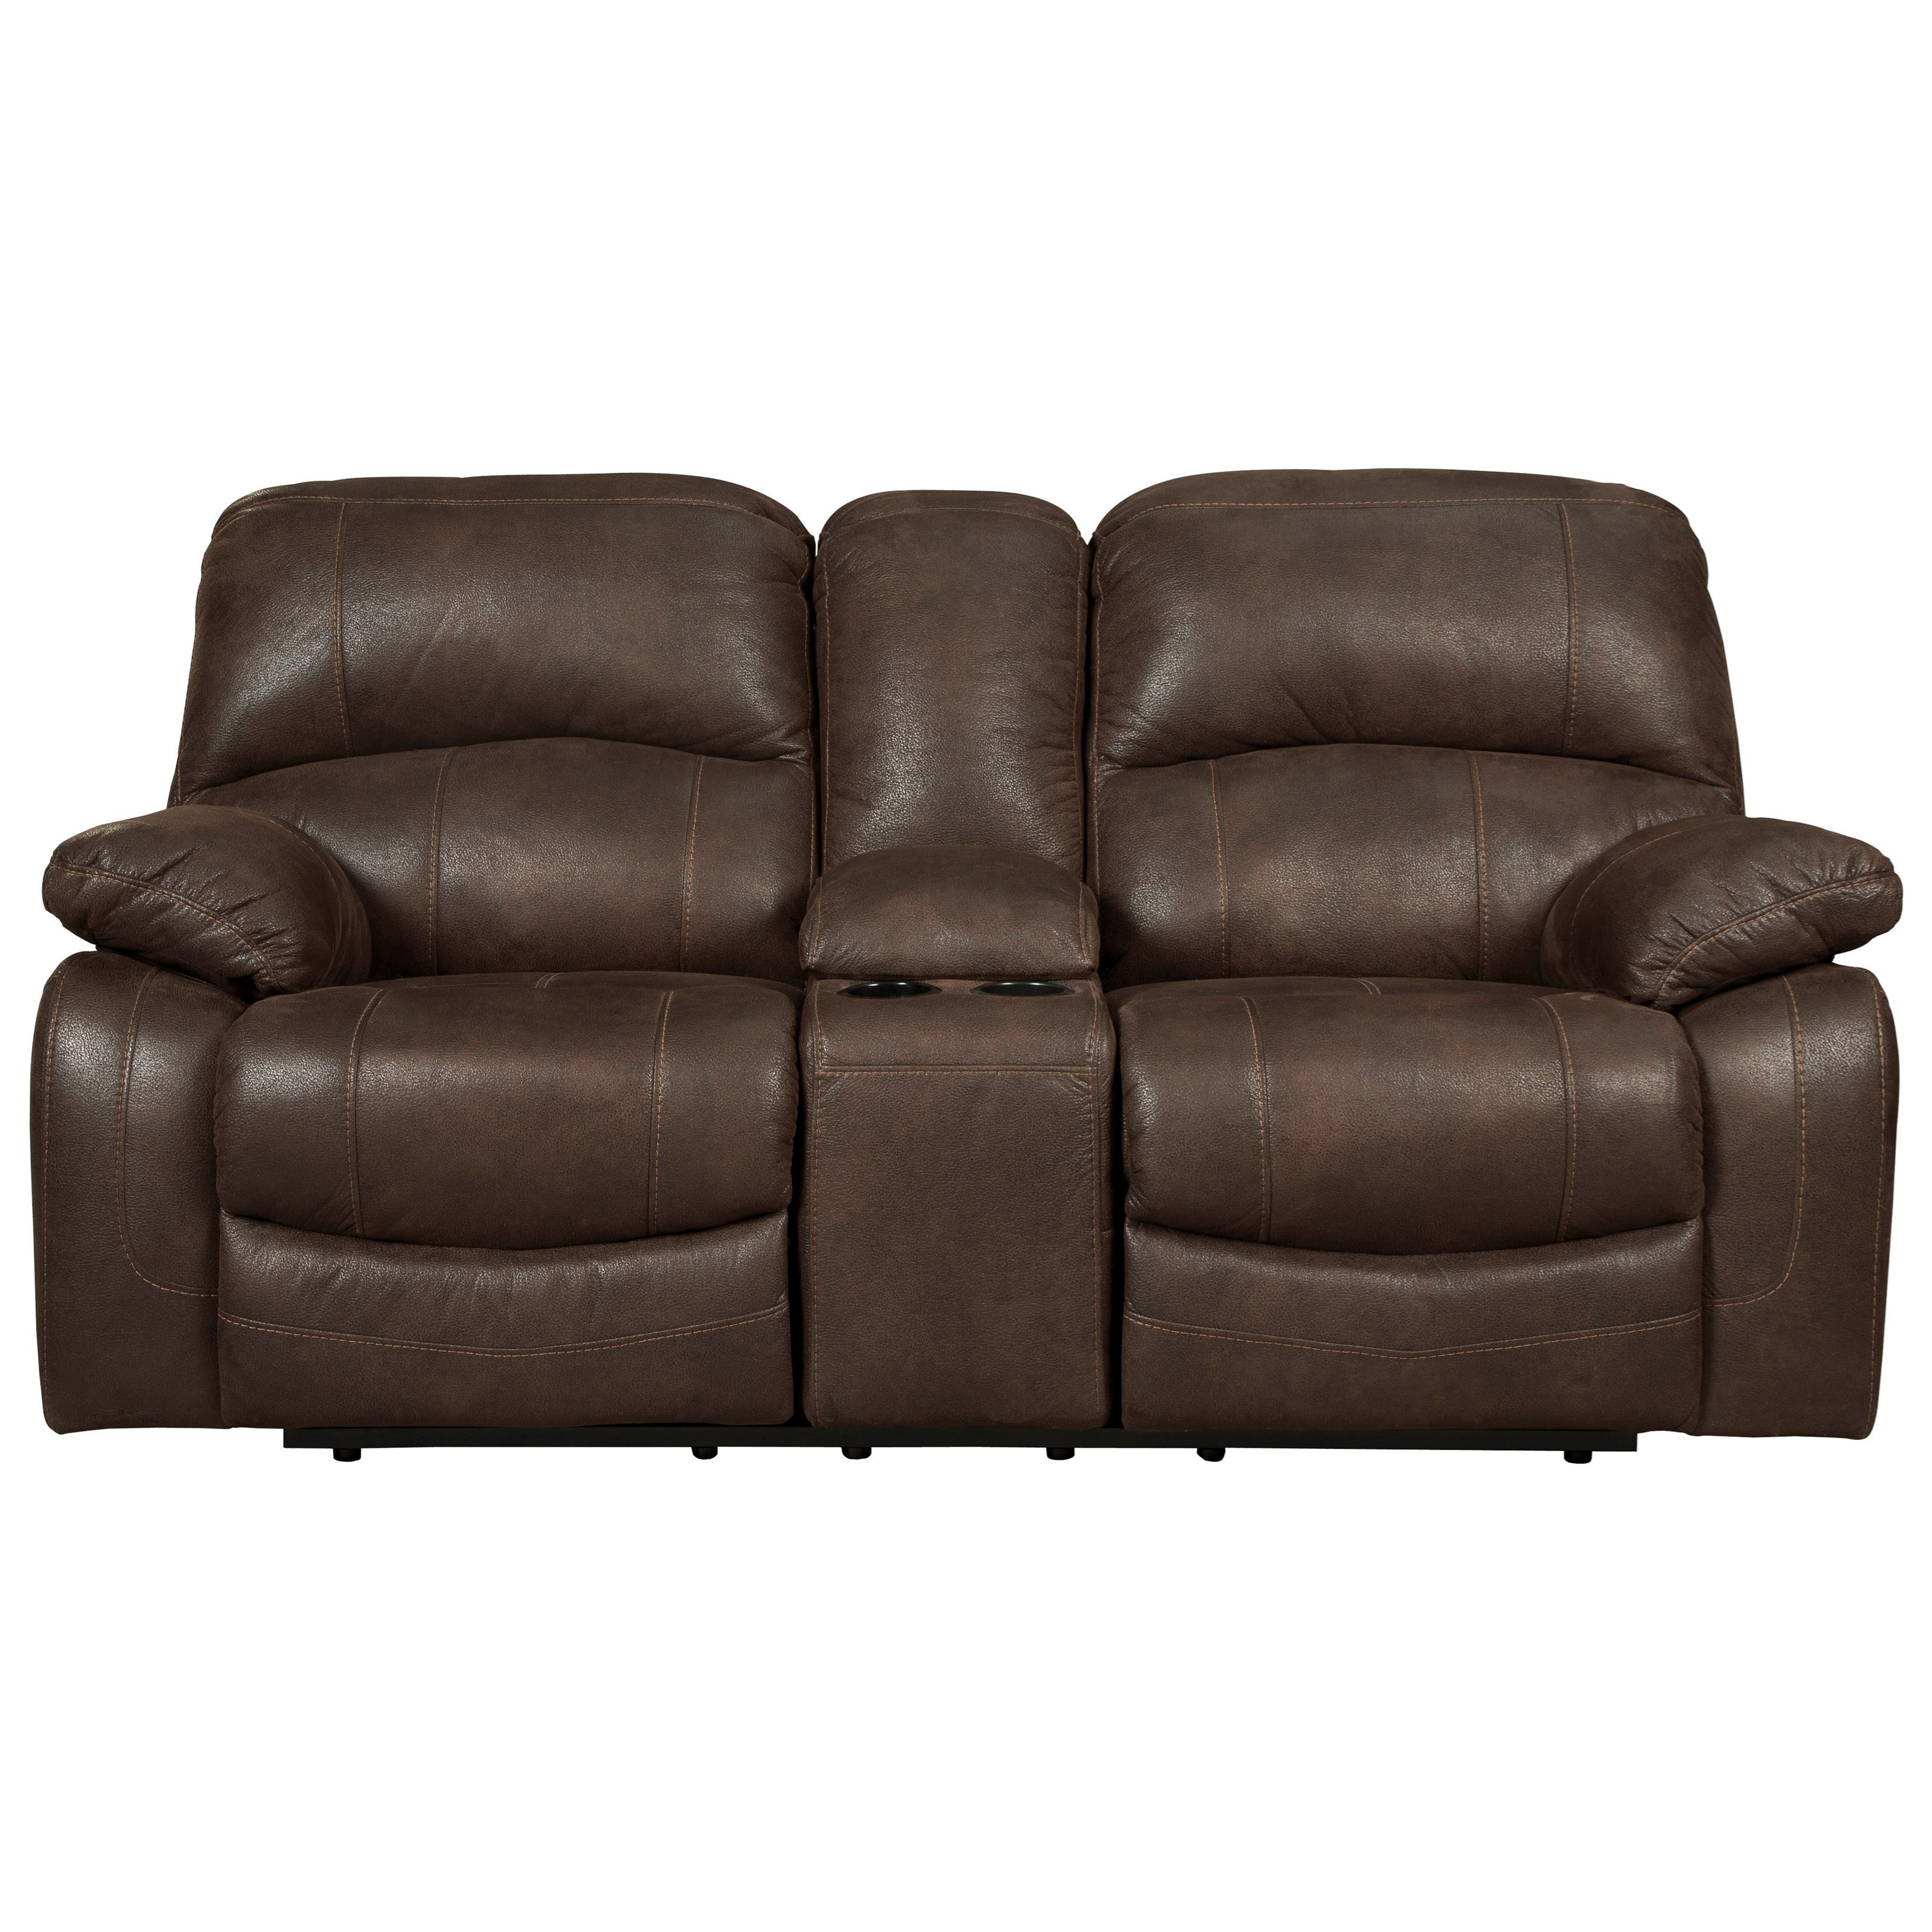 Signature Design by Ashley Zavier Glider Reclining Power Loveseat w/ Console in Brown Faux Leather  sc 1 st  Wayside Furniture & Signature Design by Ashley Zavier Glider Reclining Power Loveseat ... islam-shia.org